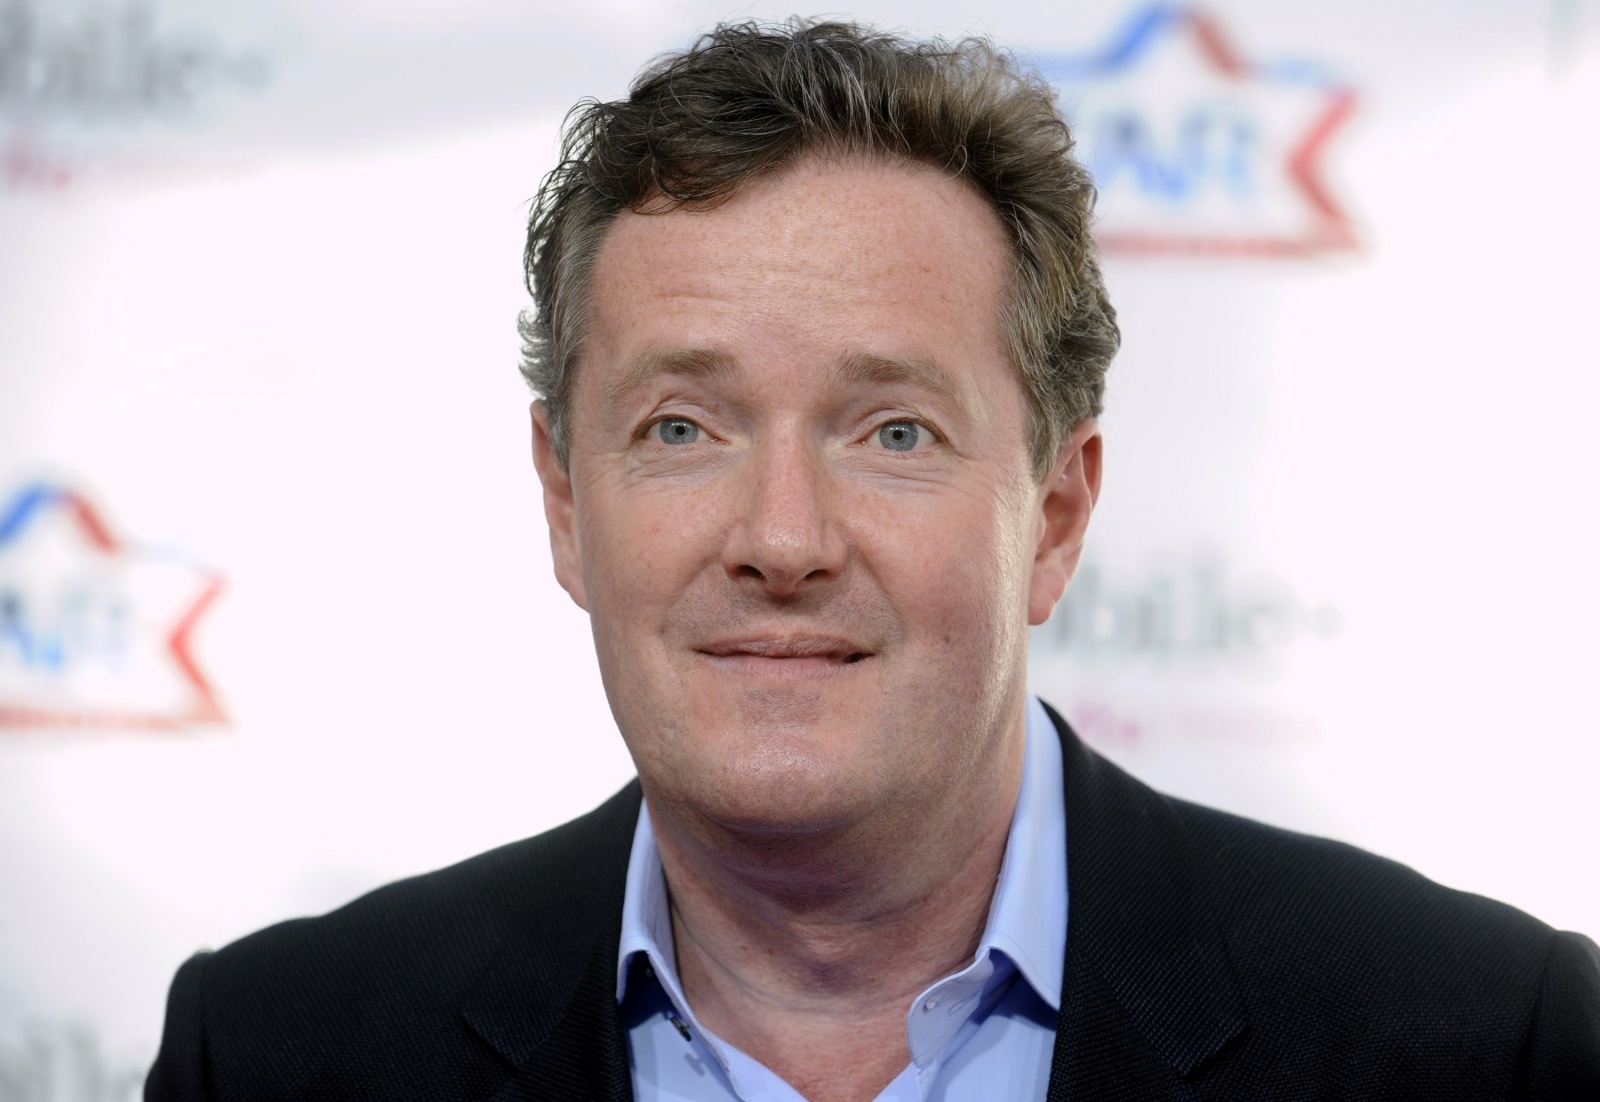 piers morgan - photo #16